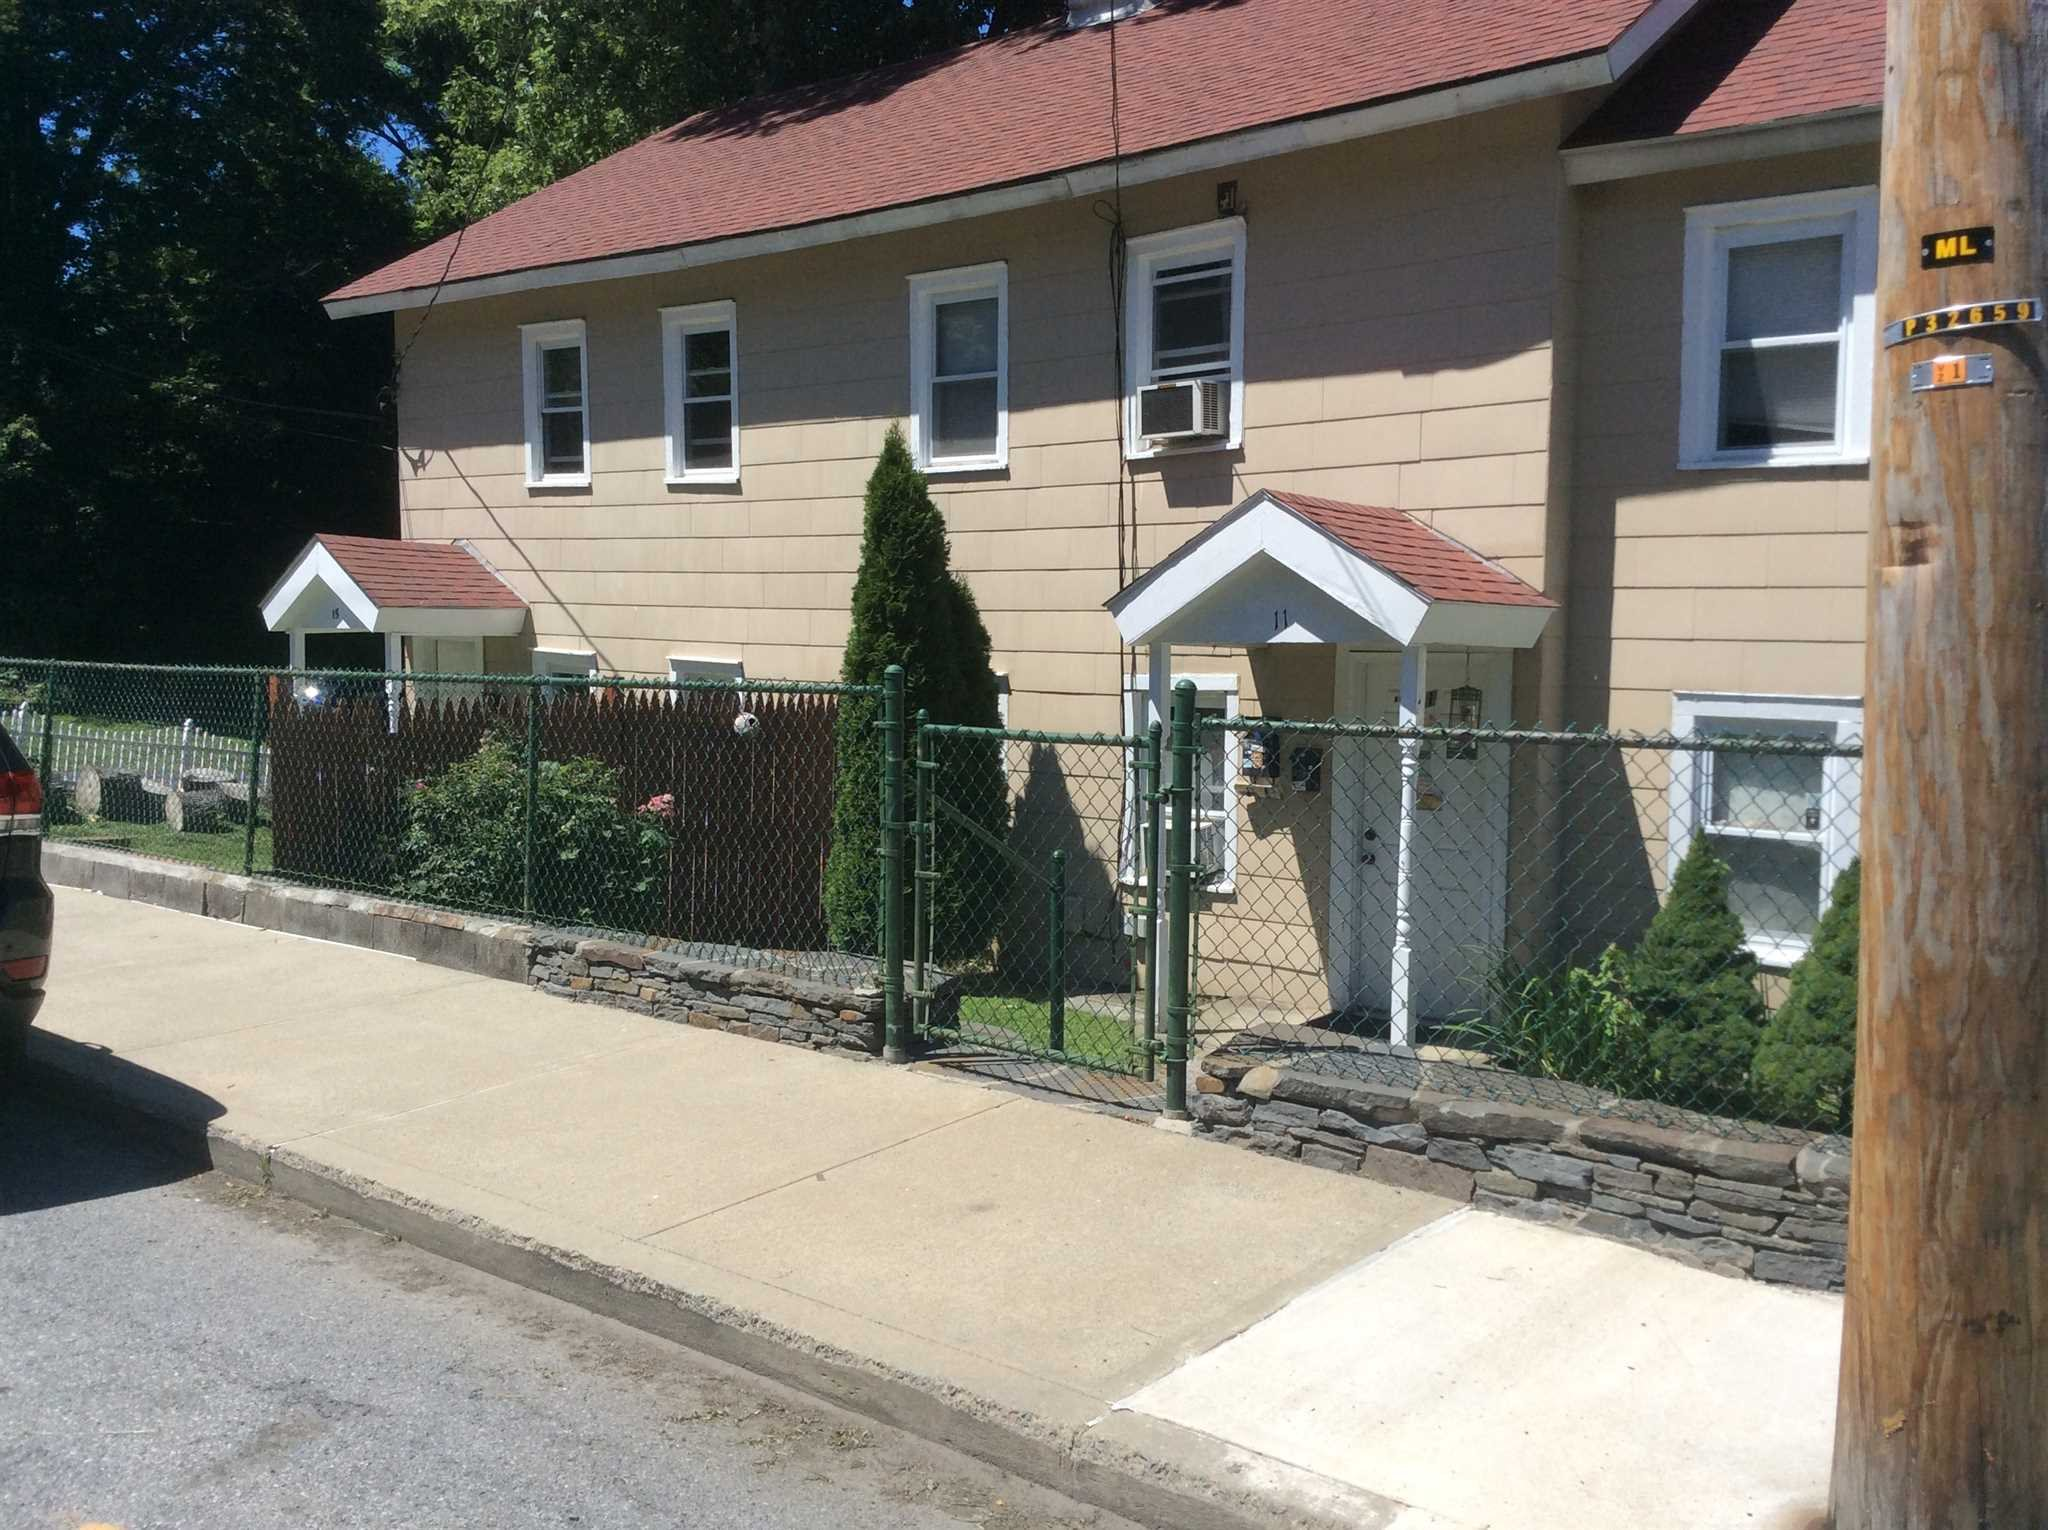 Single Family Home for Sale at 11 RUSSELL Avenue 11 RUSSELL Avenue Beacon, New York 12508 United States